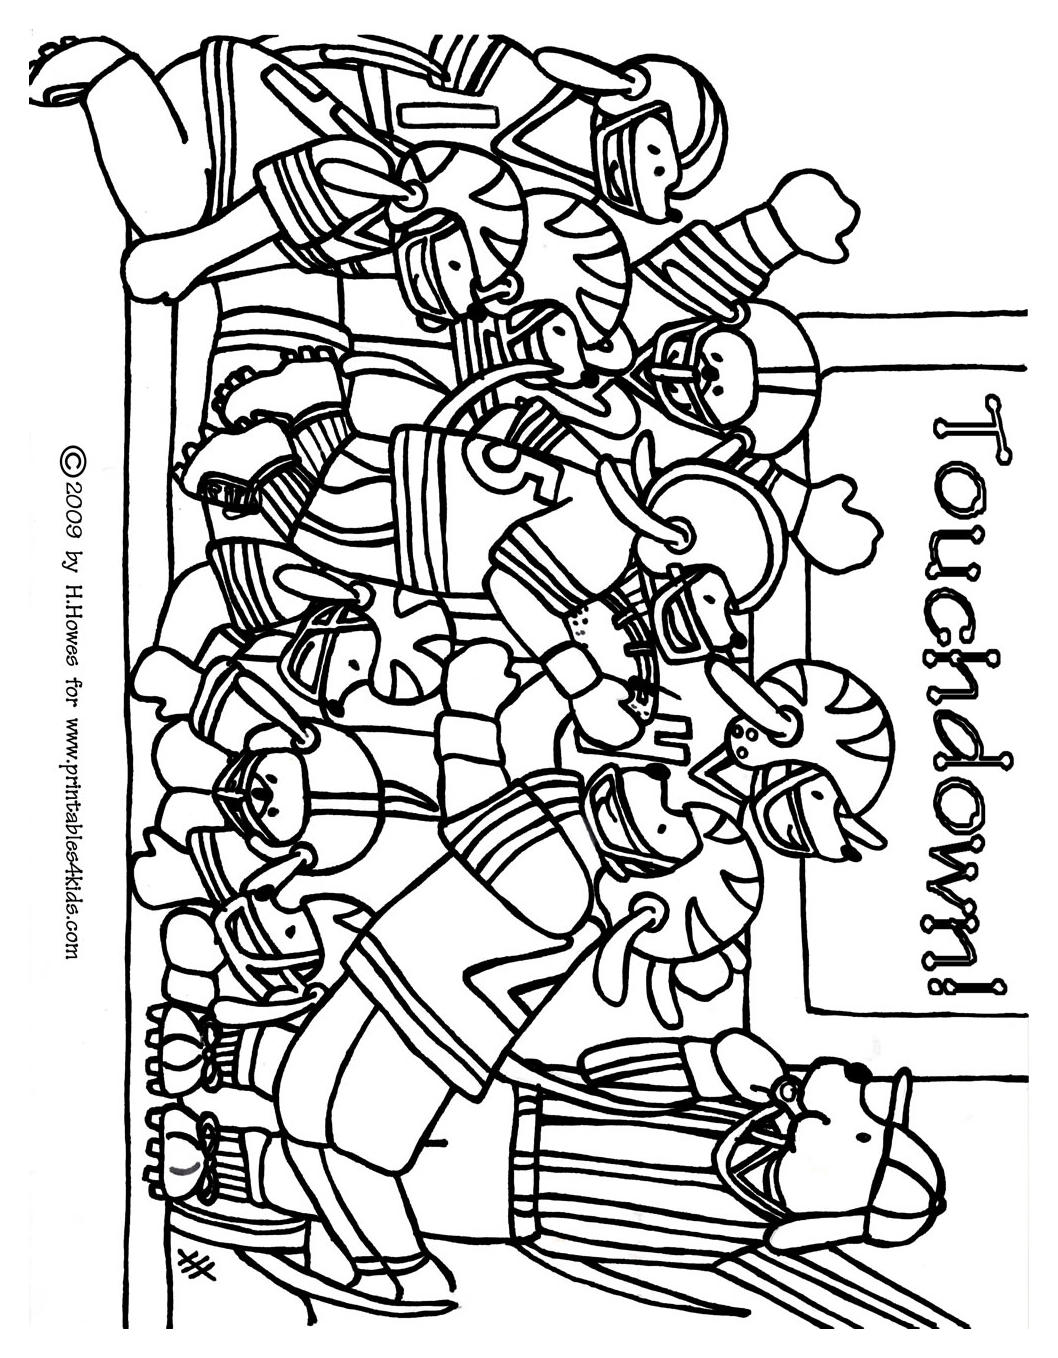 coloring games for adults elephant adult coloring page printable woo jr kids coloring adults for games